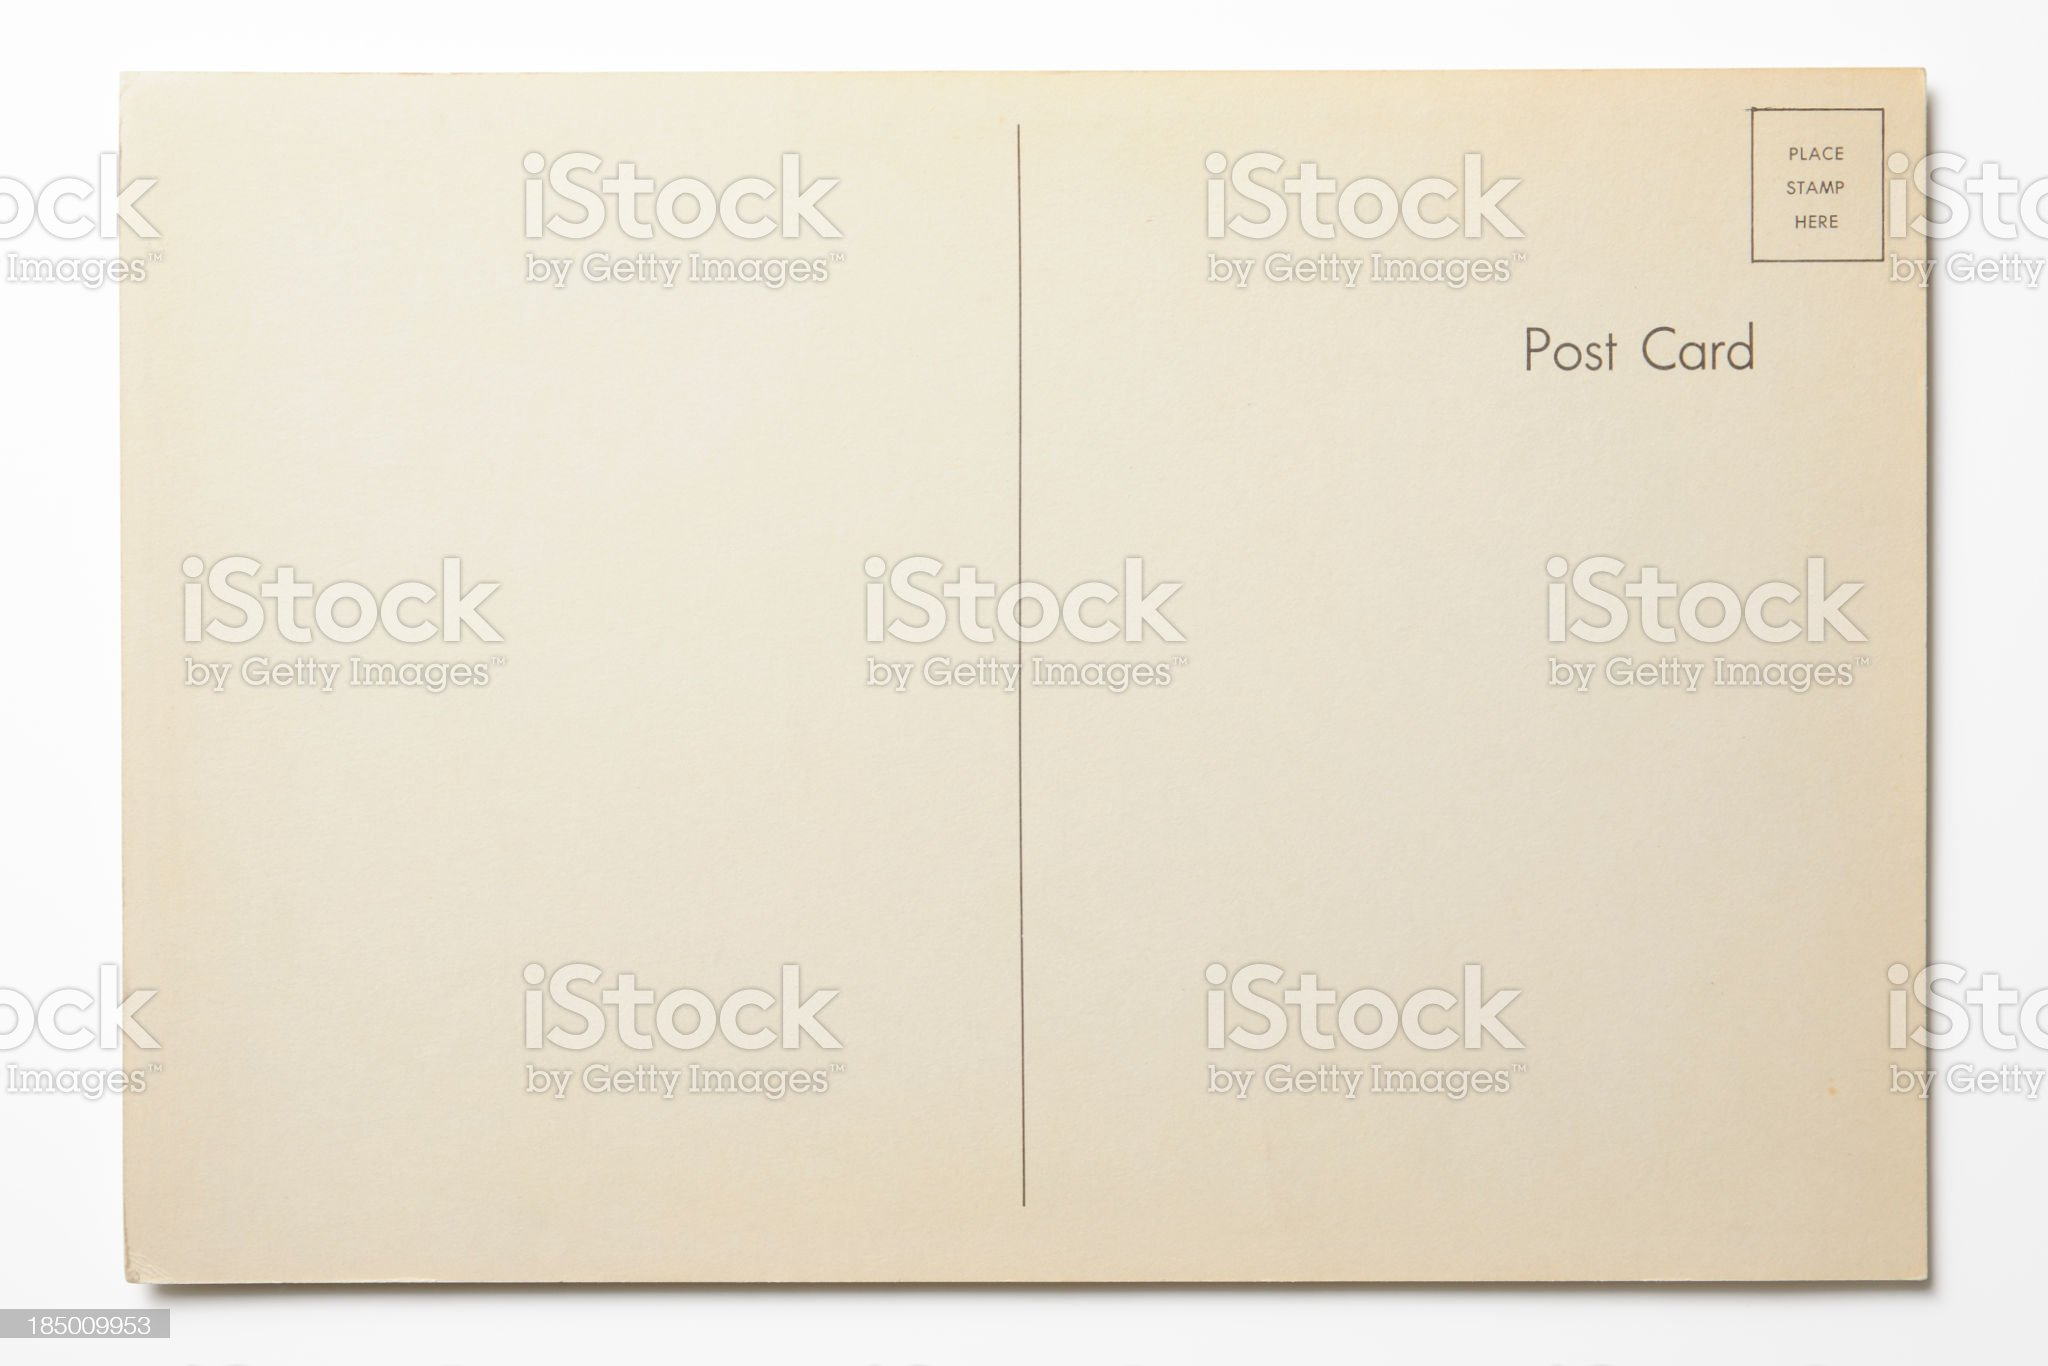 Isolated shot of antique postcard on white background royalty-free stock photo